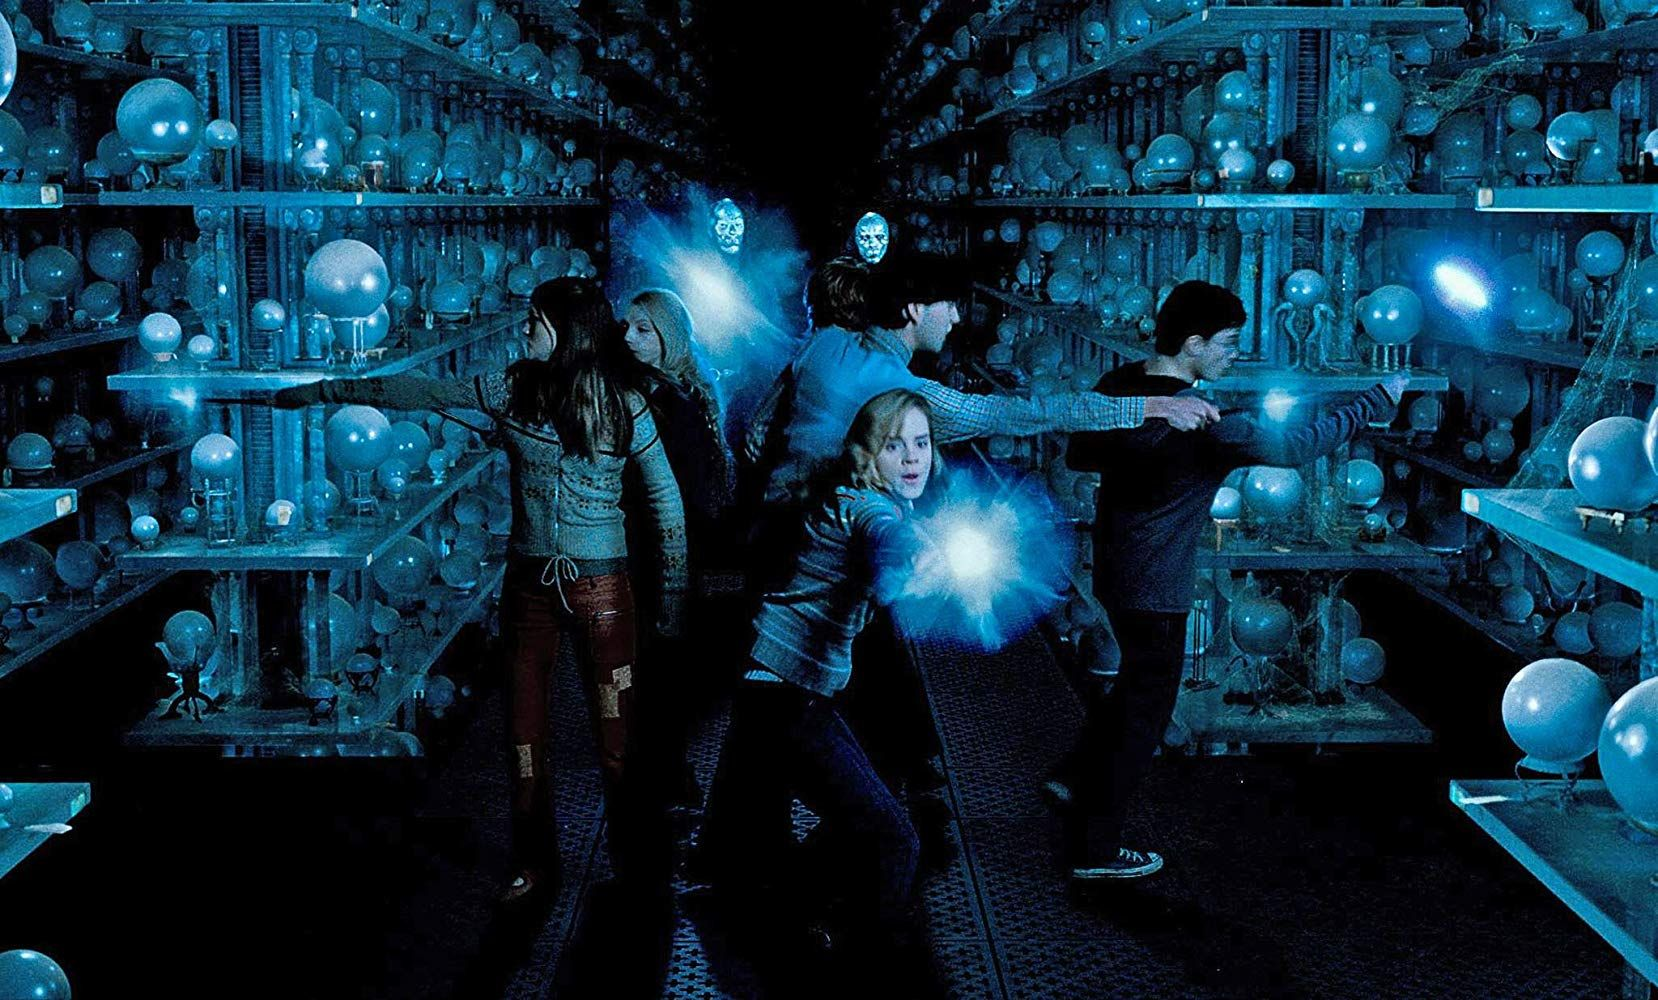 Harry Potter And The Order Of The Phoenix 2007 Harry Potter Wiki Harry Potter Patronus Harry Potter Movies